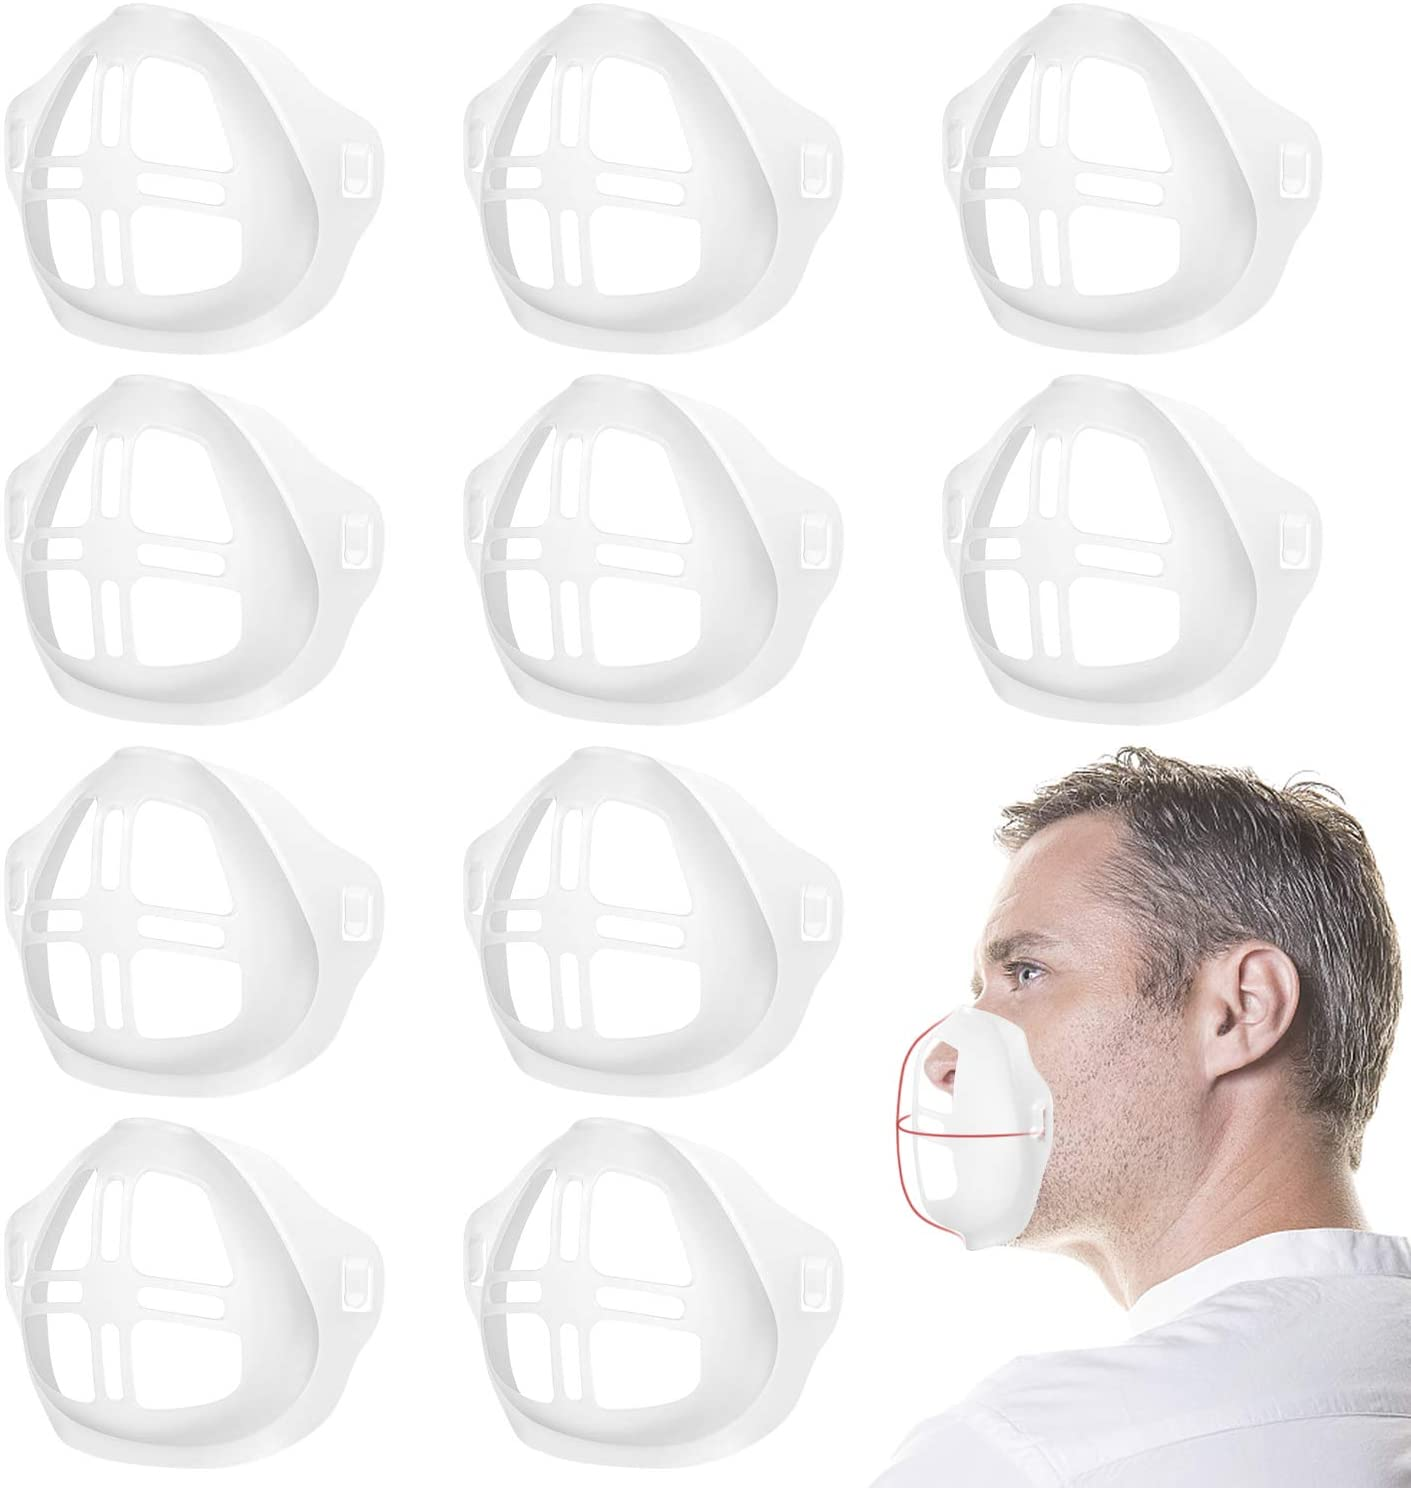 MACHINELINK 10pcs 3D Inner Bracket for Mask, Inner Support Frame Softy Nose Mouth Pad Protection, Extend Breathing Space, Breath Comfortable, Washable and Reusable